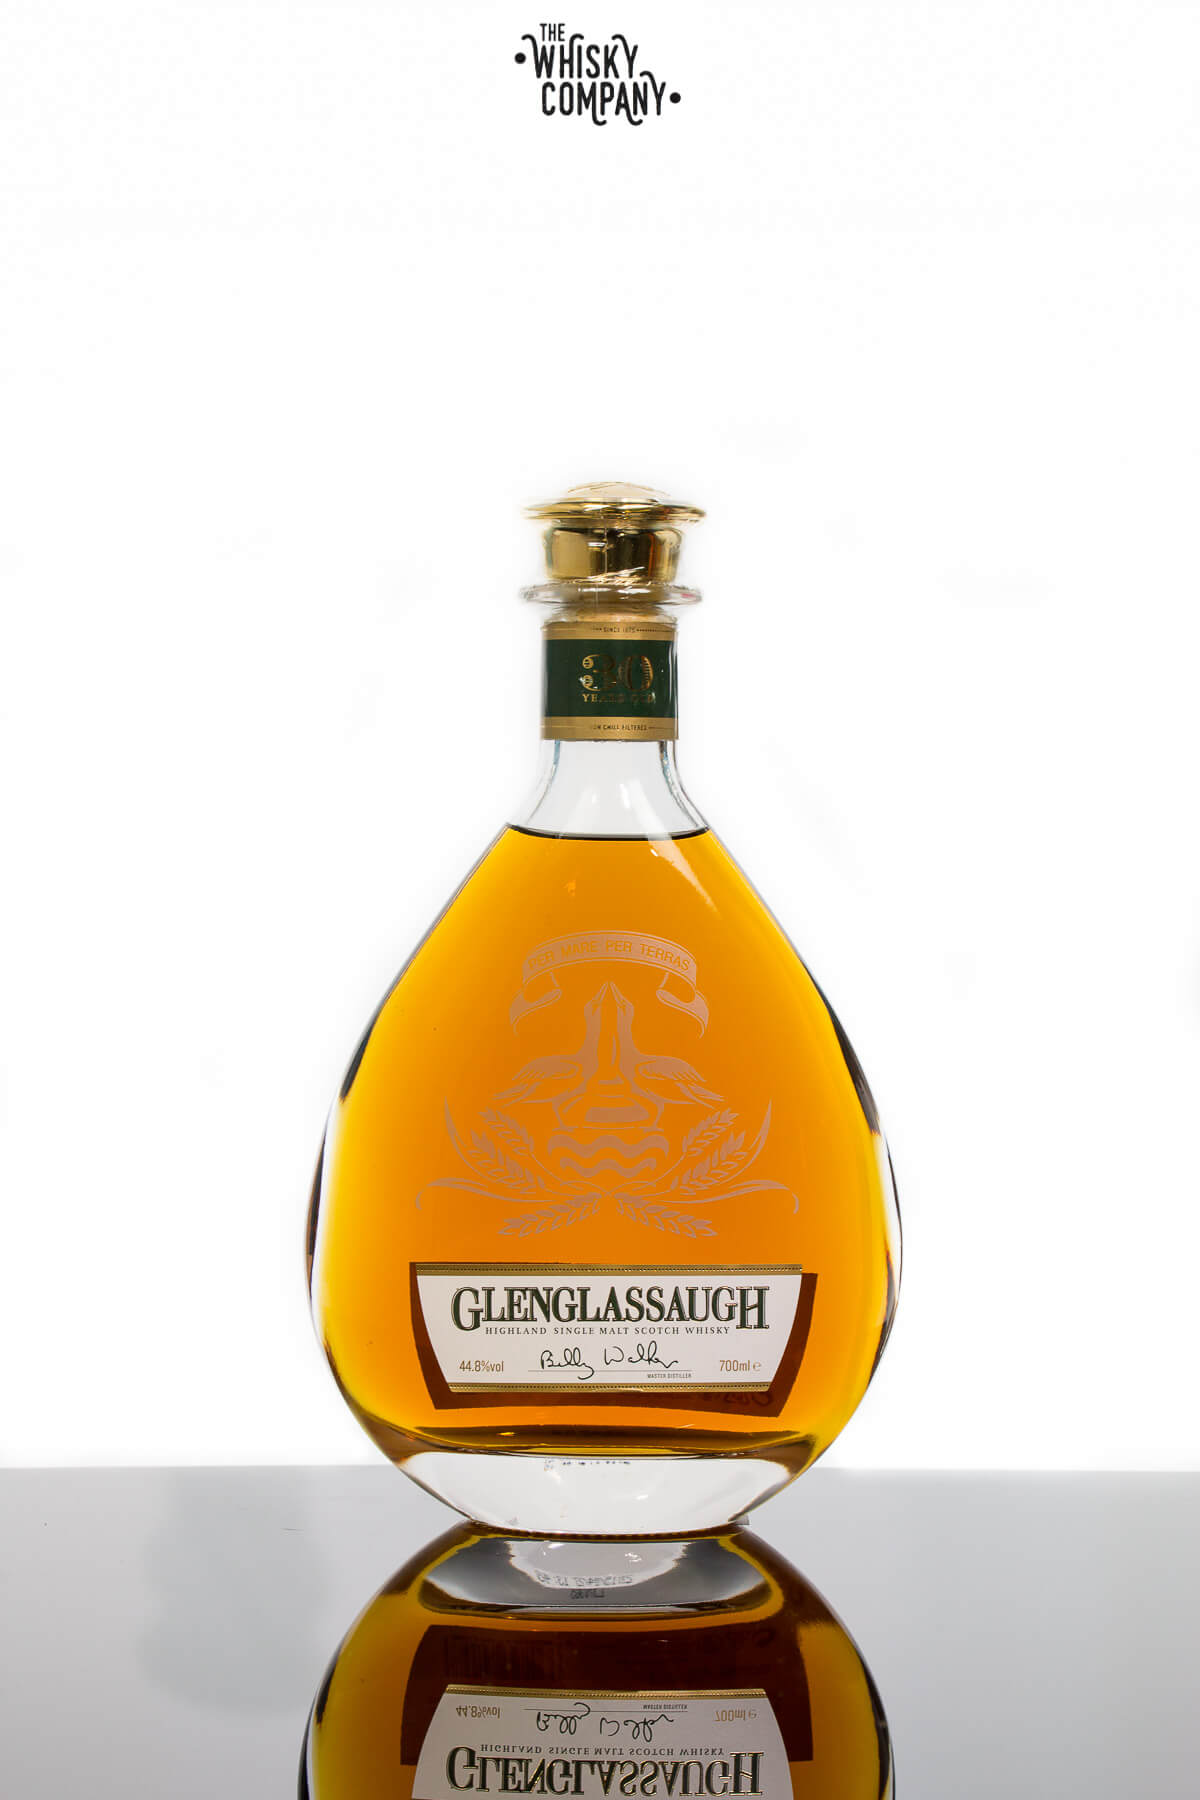 Glenglassaugh 30 Years Old Highland Single Malt Scotch Whisky